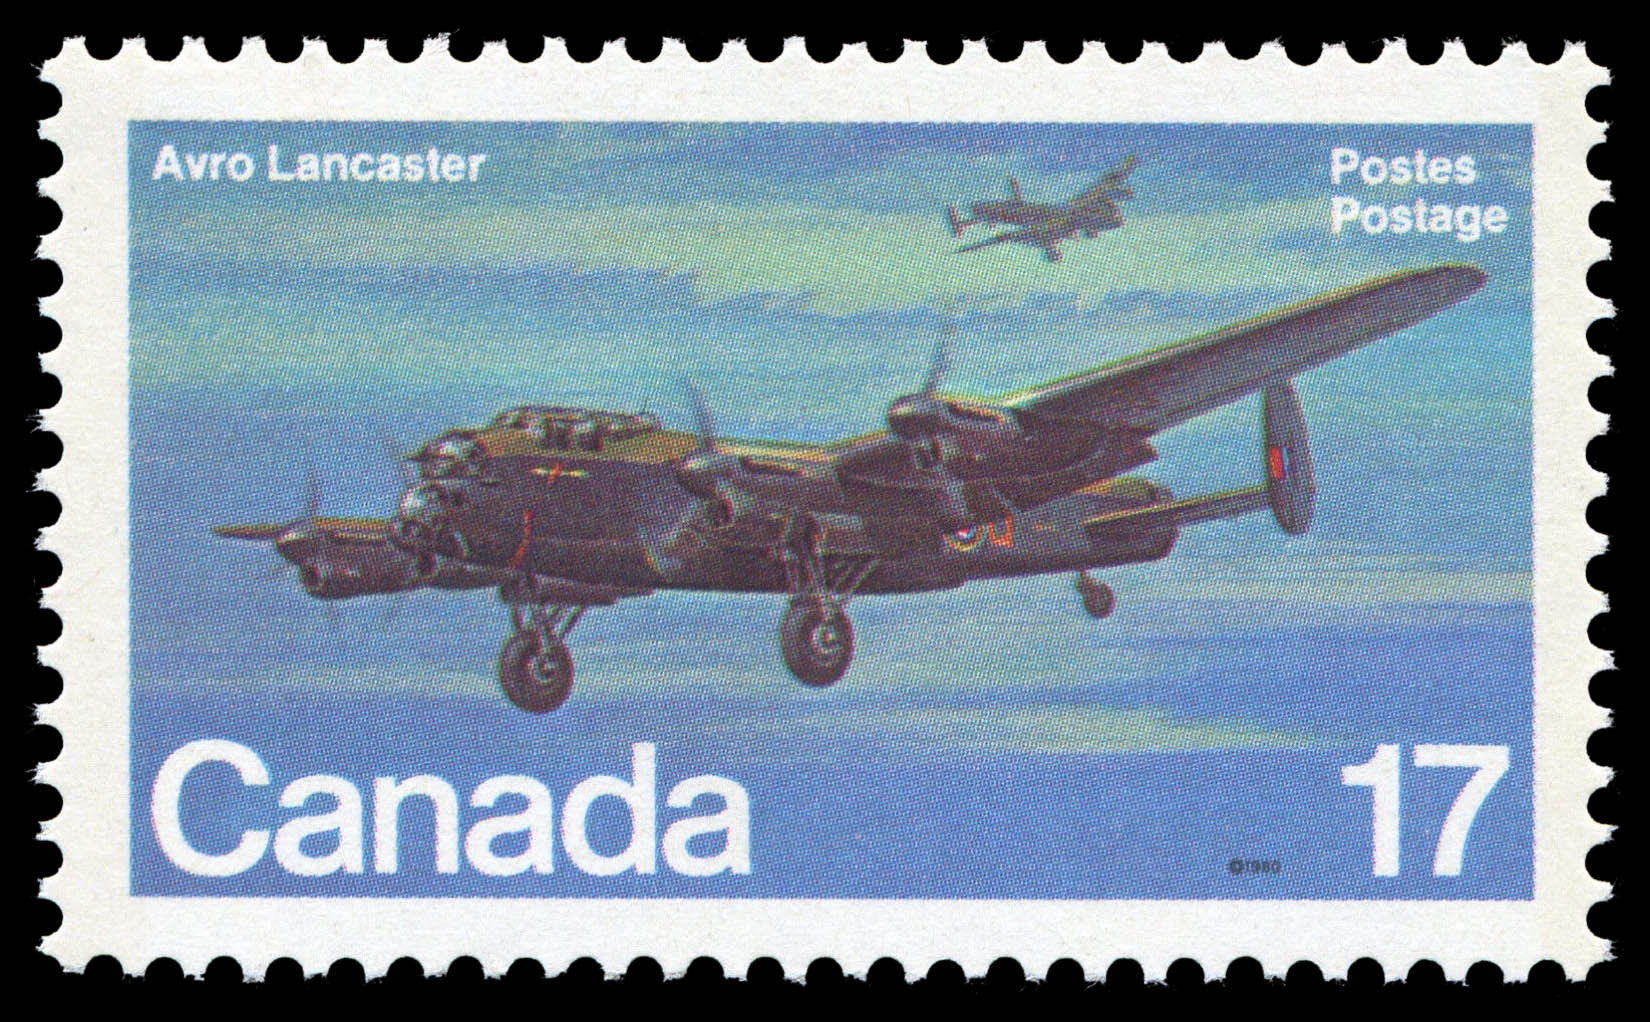 Avro Lancaster Canada Postage Stamp | Canadian Aircraft, Canadian Military Aircraft